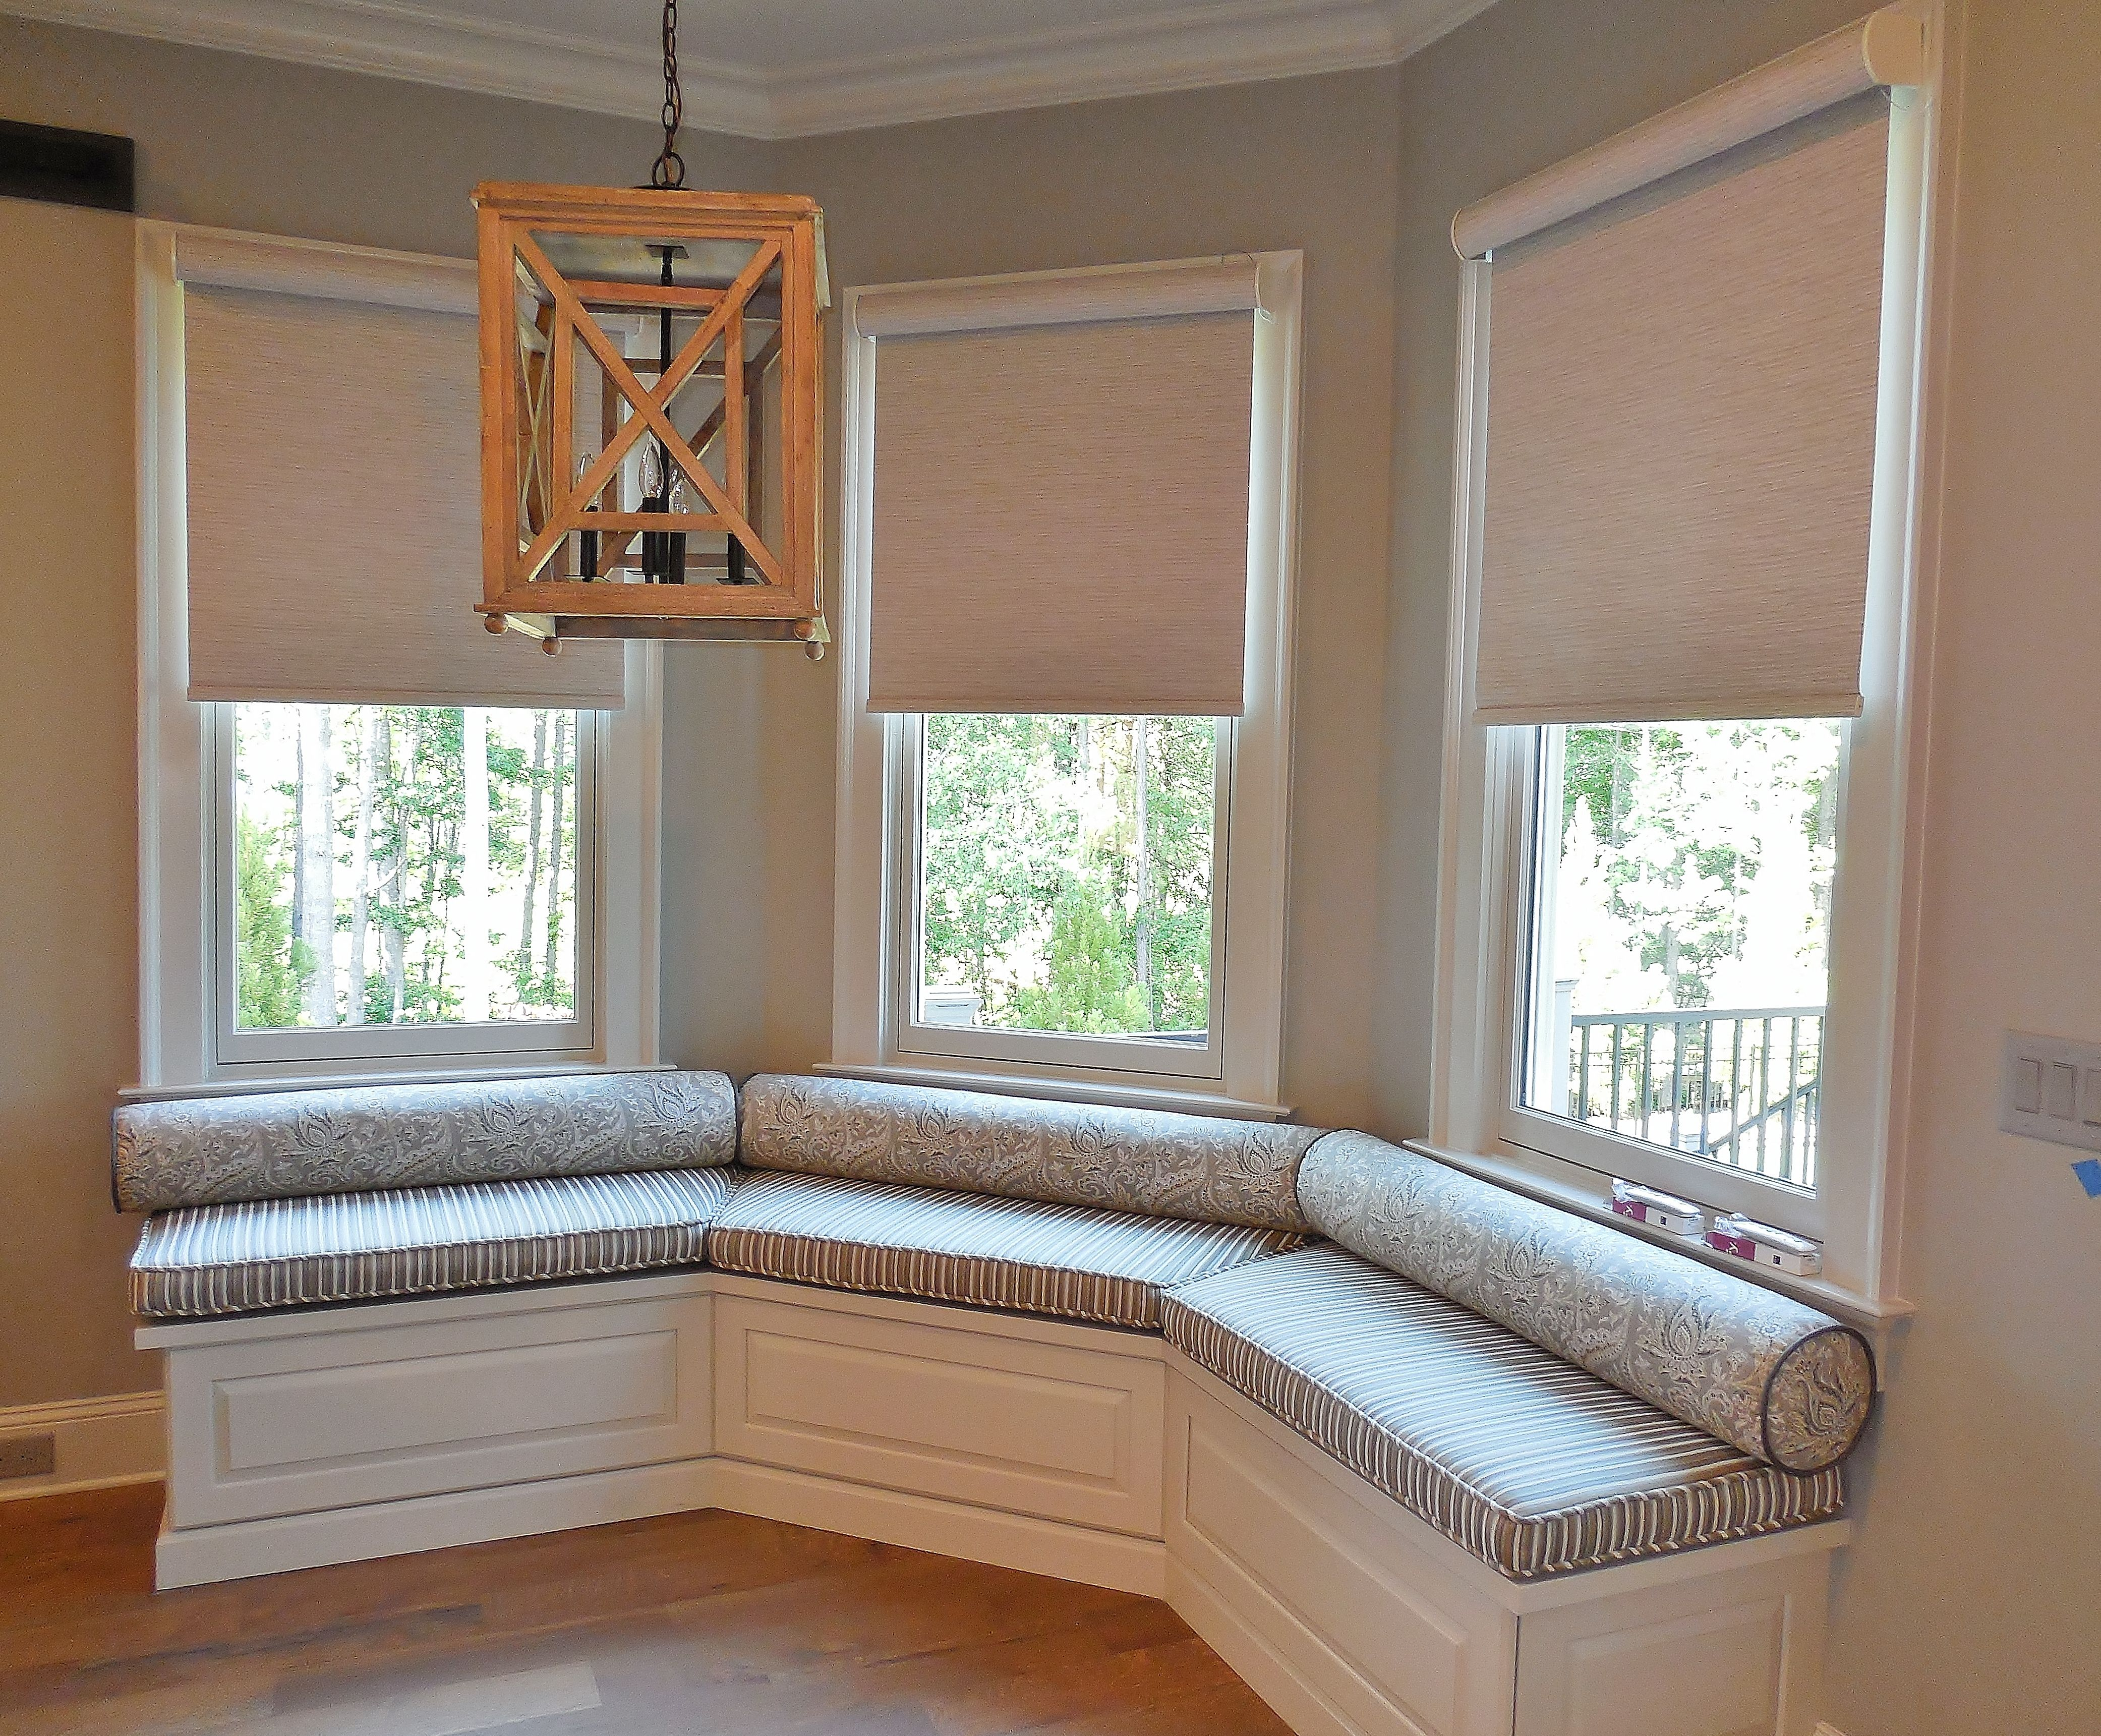 Magnificent Motorized Blackout Roller Shades In A Bay Window We Also Dailytribune Chair Design For Home Dailytribuneorg